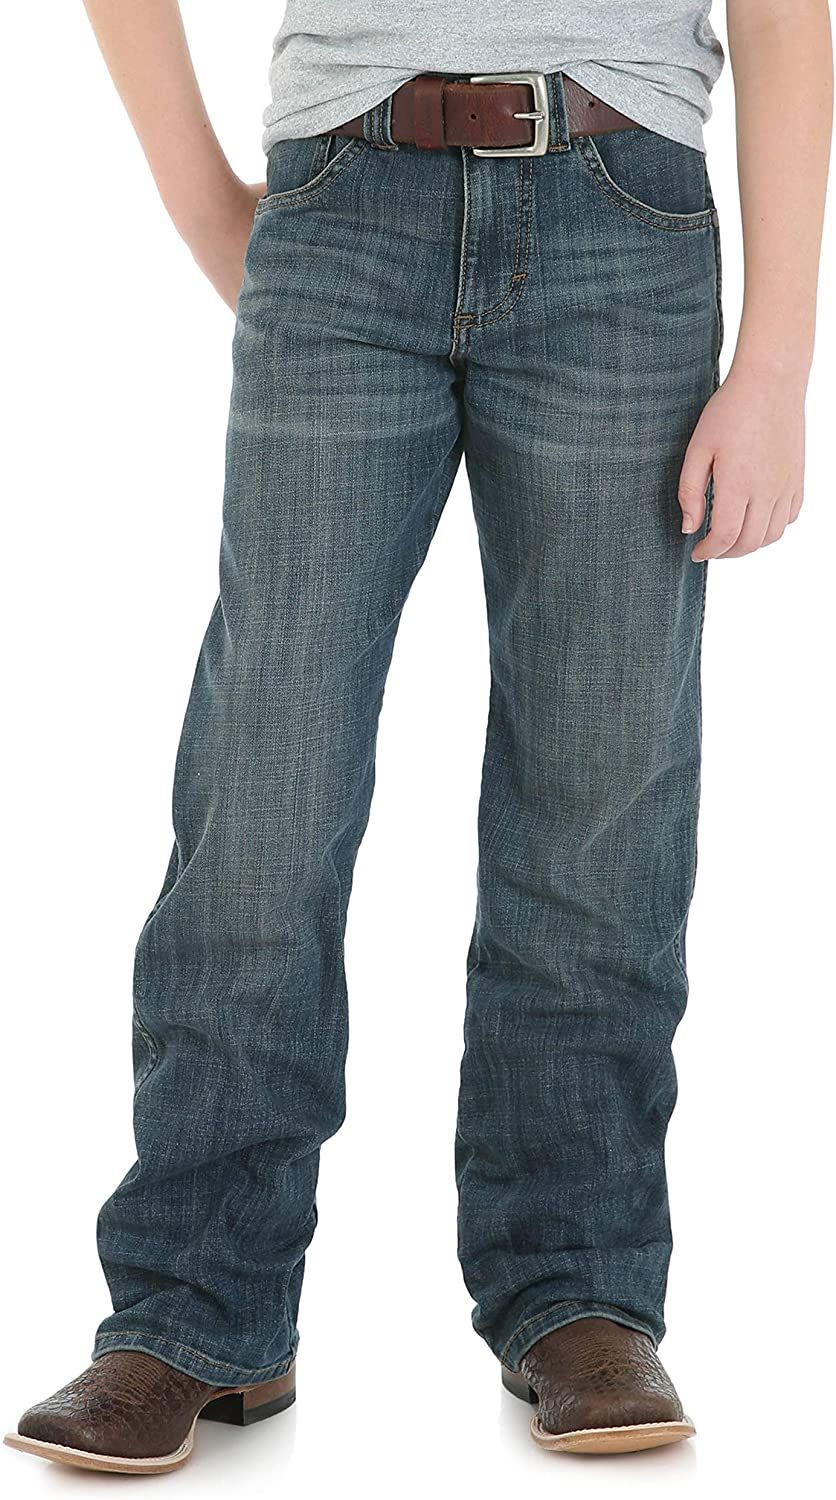 Wrangler Boys' Retro Special price Relaxed Boot Jeans Cut In stock Fit